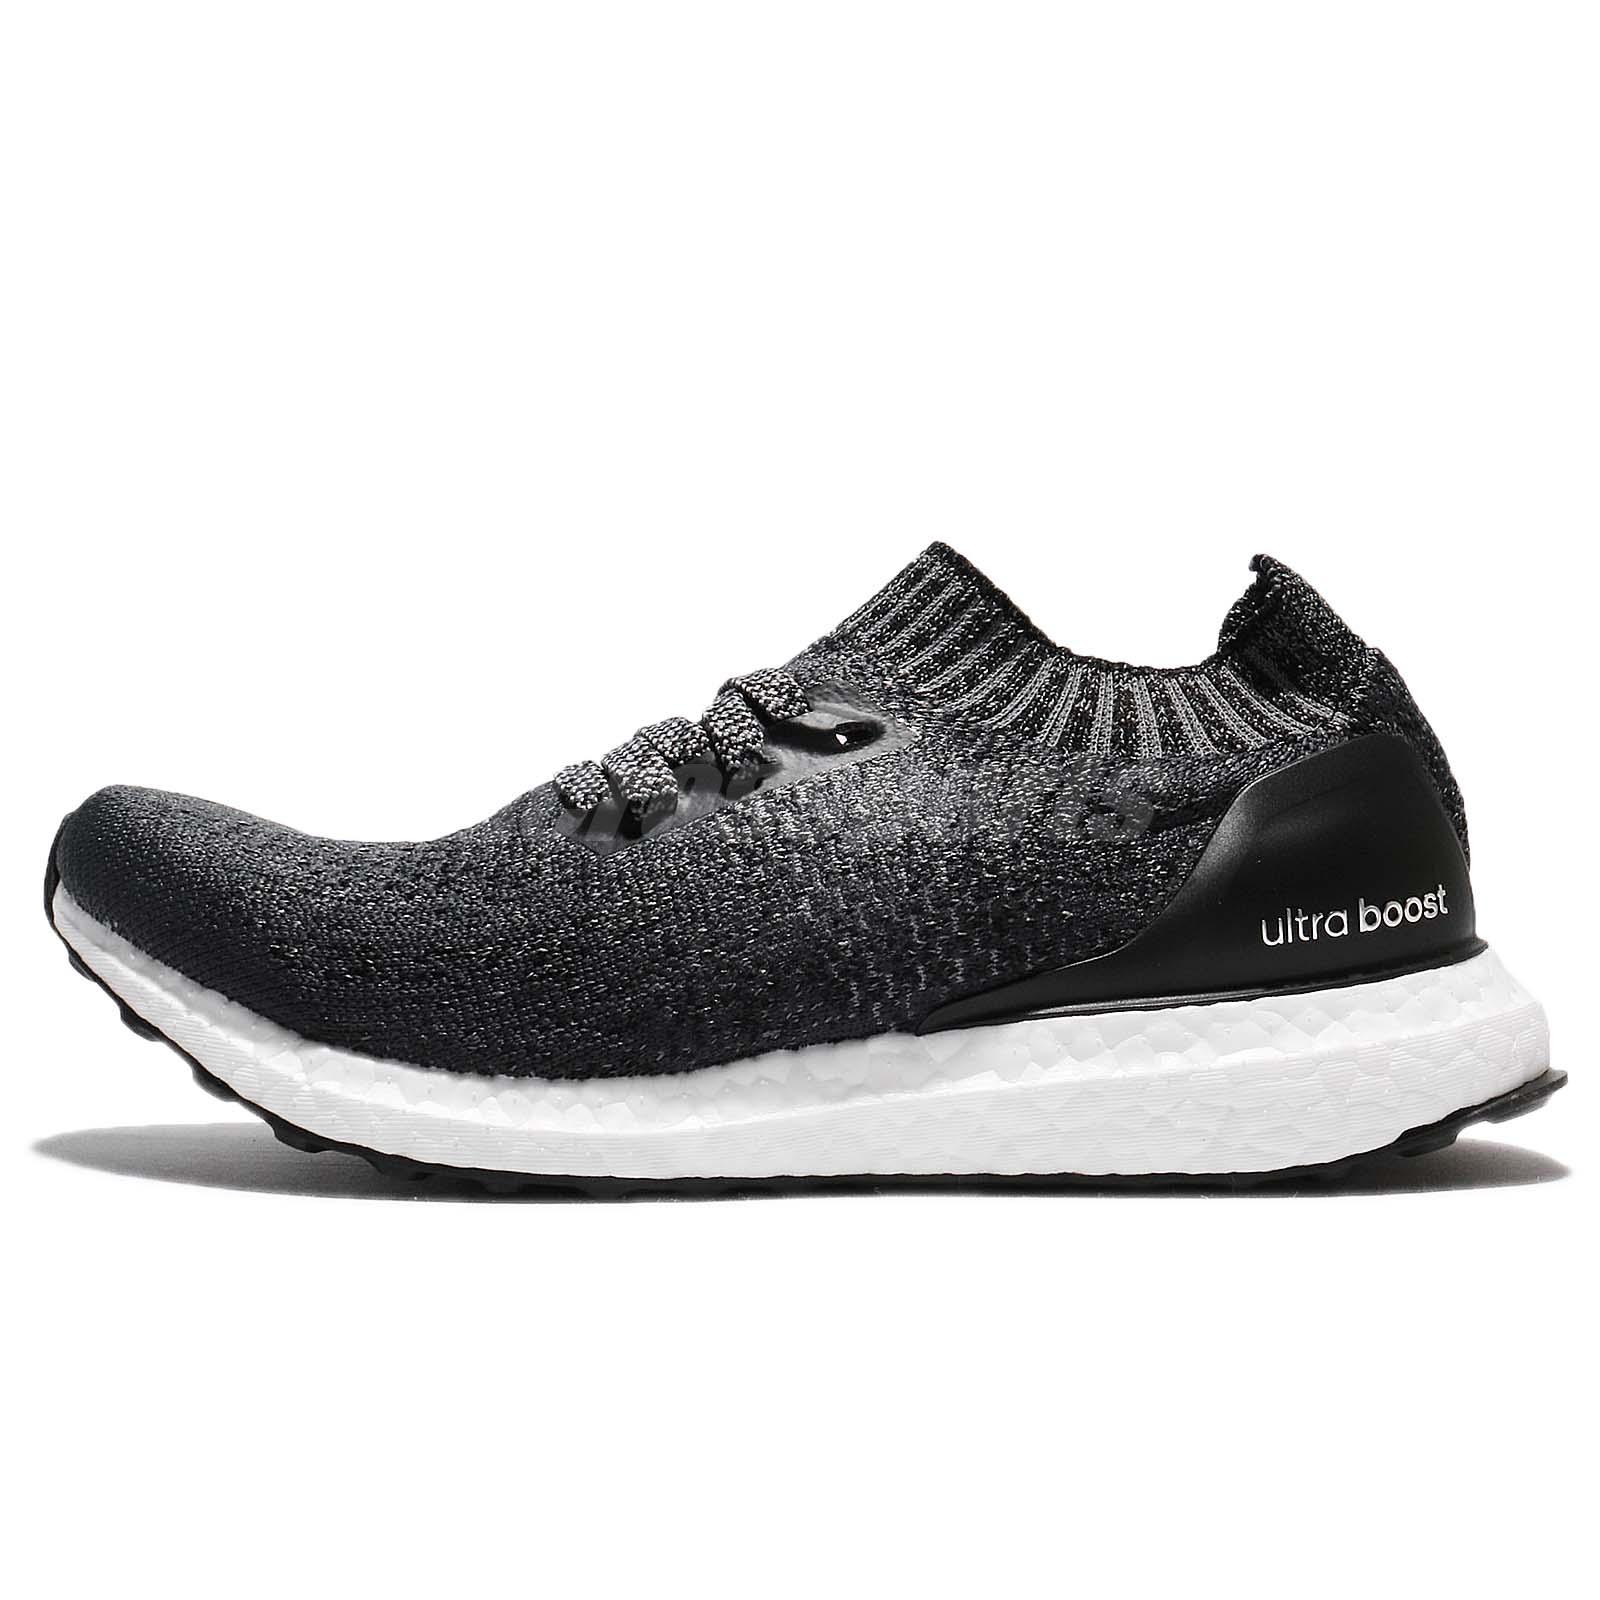 official photos 6c024 7dfc7 adidas UltraBOOST Uncaged W Carbon Black Grey Women Running Shoes Sneaker  DB1133